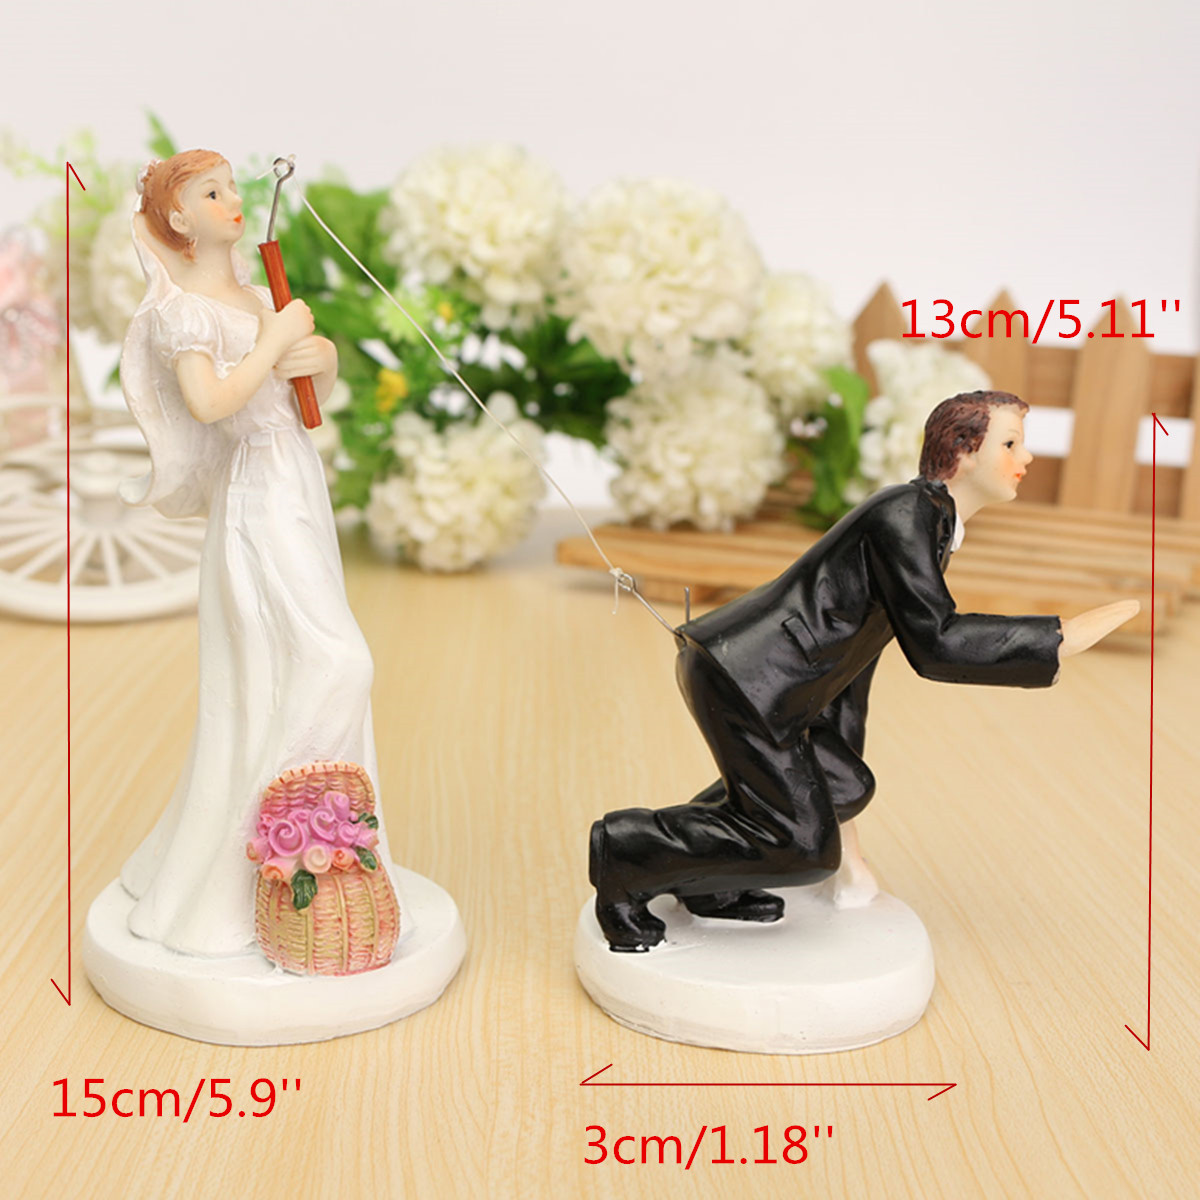 Wedding Cake Toppers - Fishing Bride and Groom Couple, Cake ...